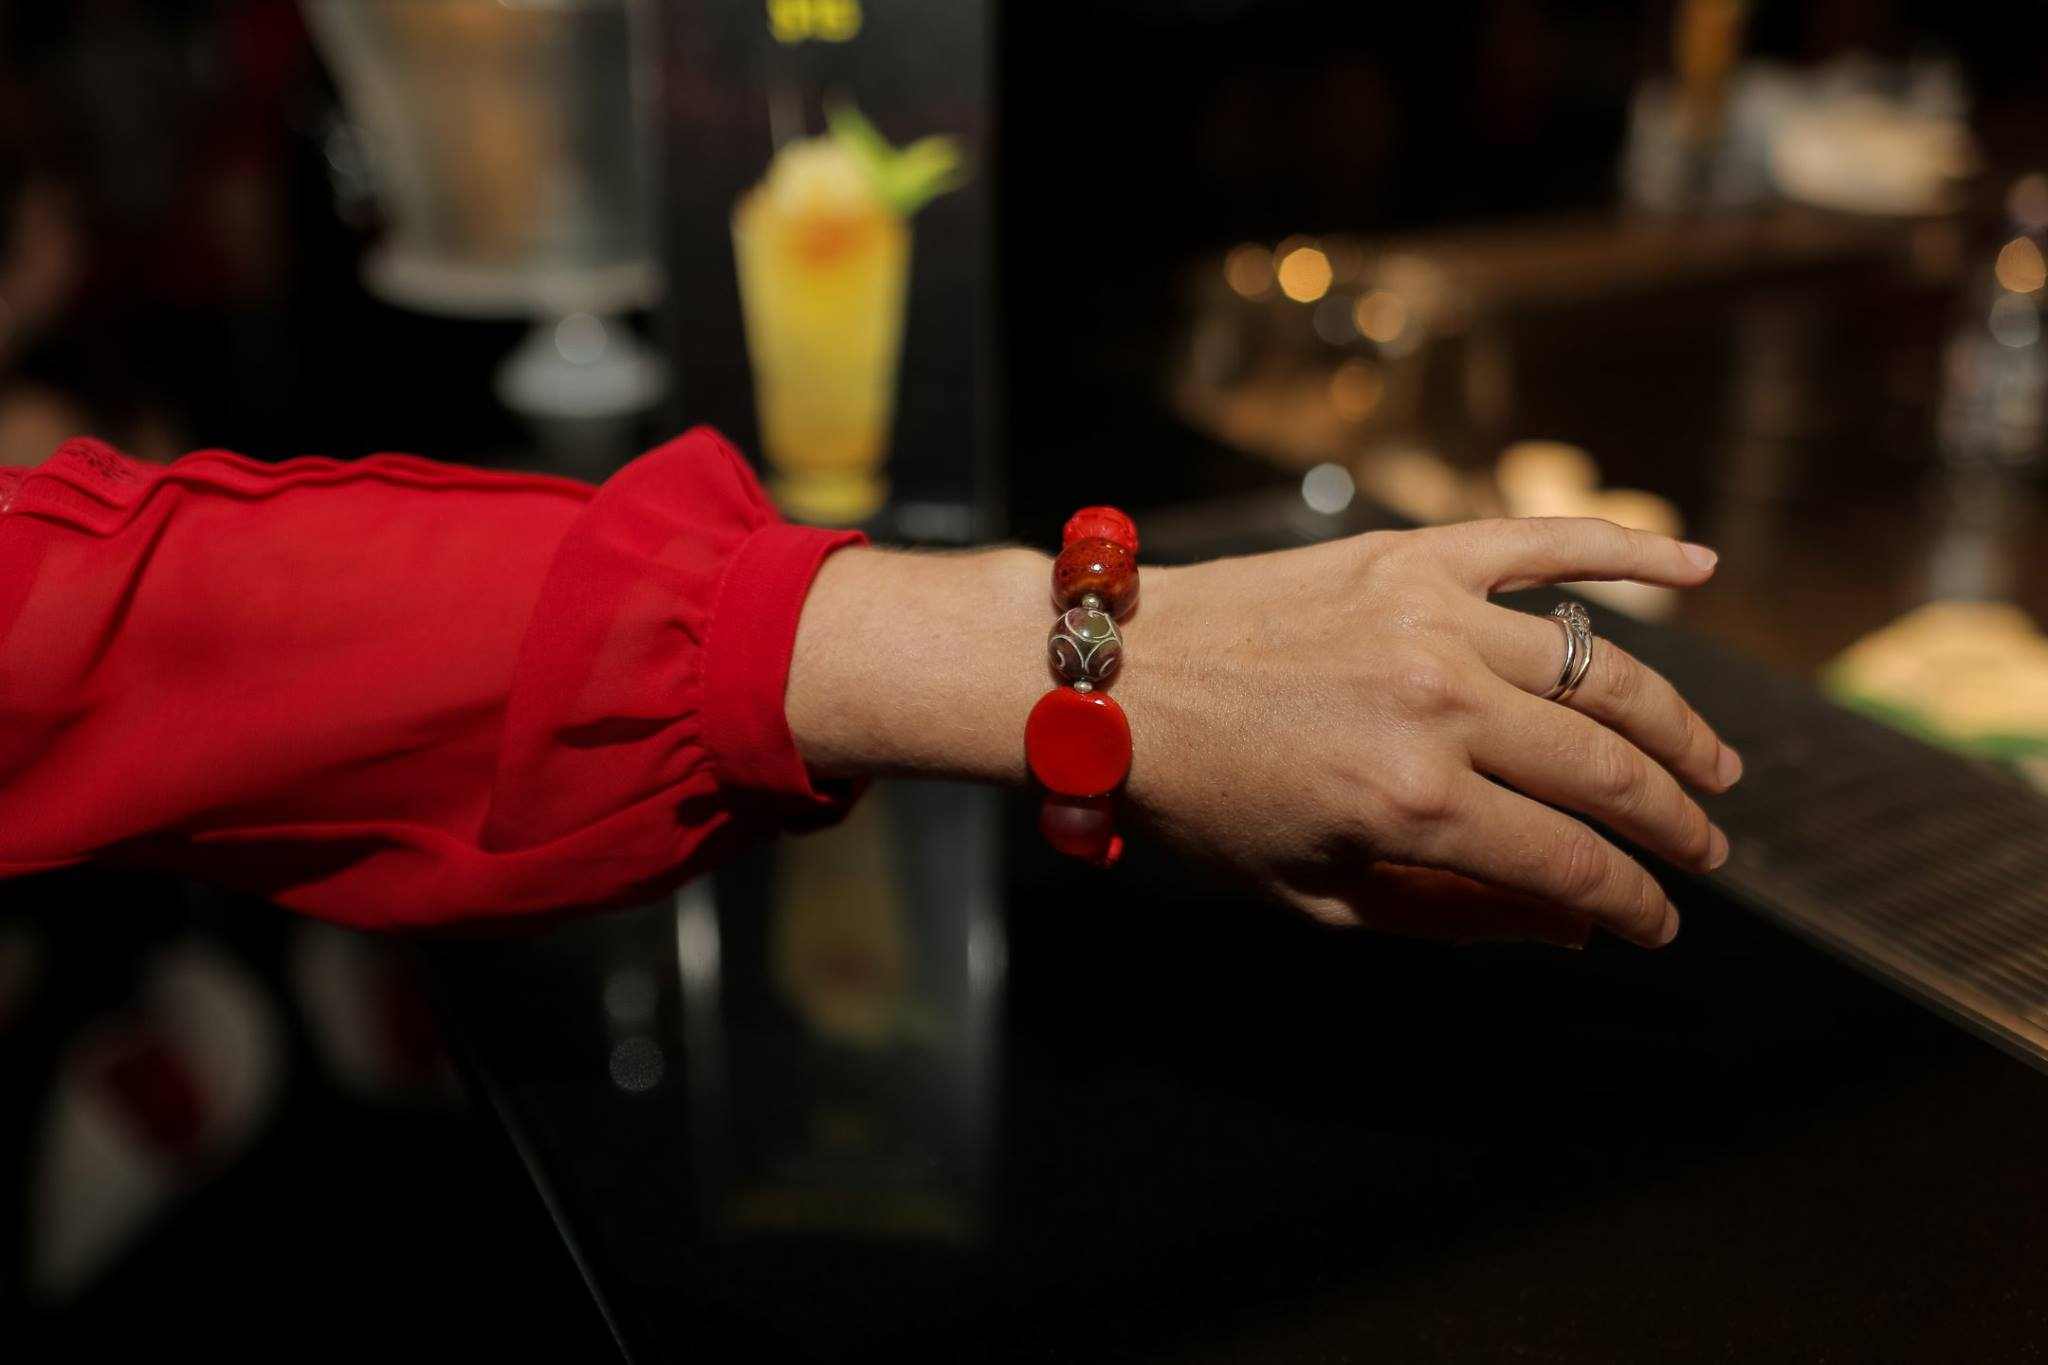 Thank you to the amazing Shelley Millingen, founder of Bellicious for this red bracelet, made especially for the Red Party!